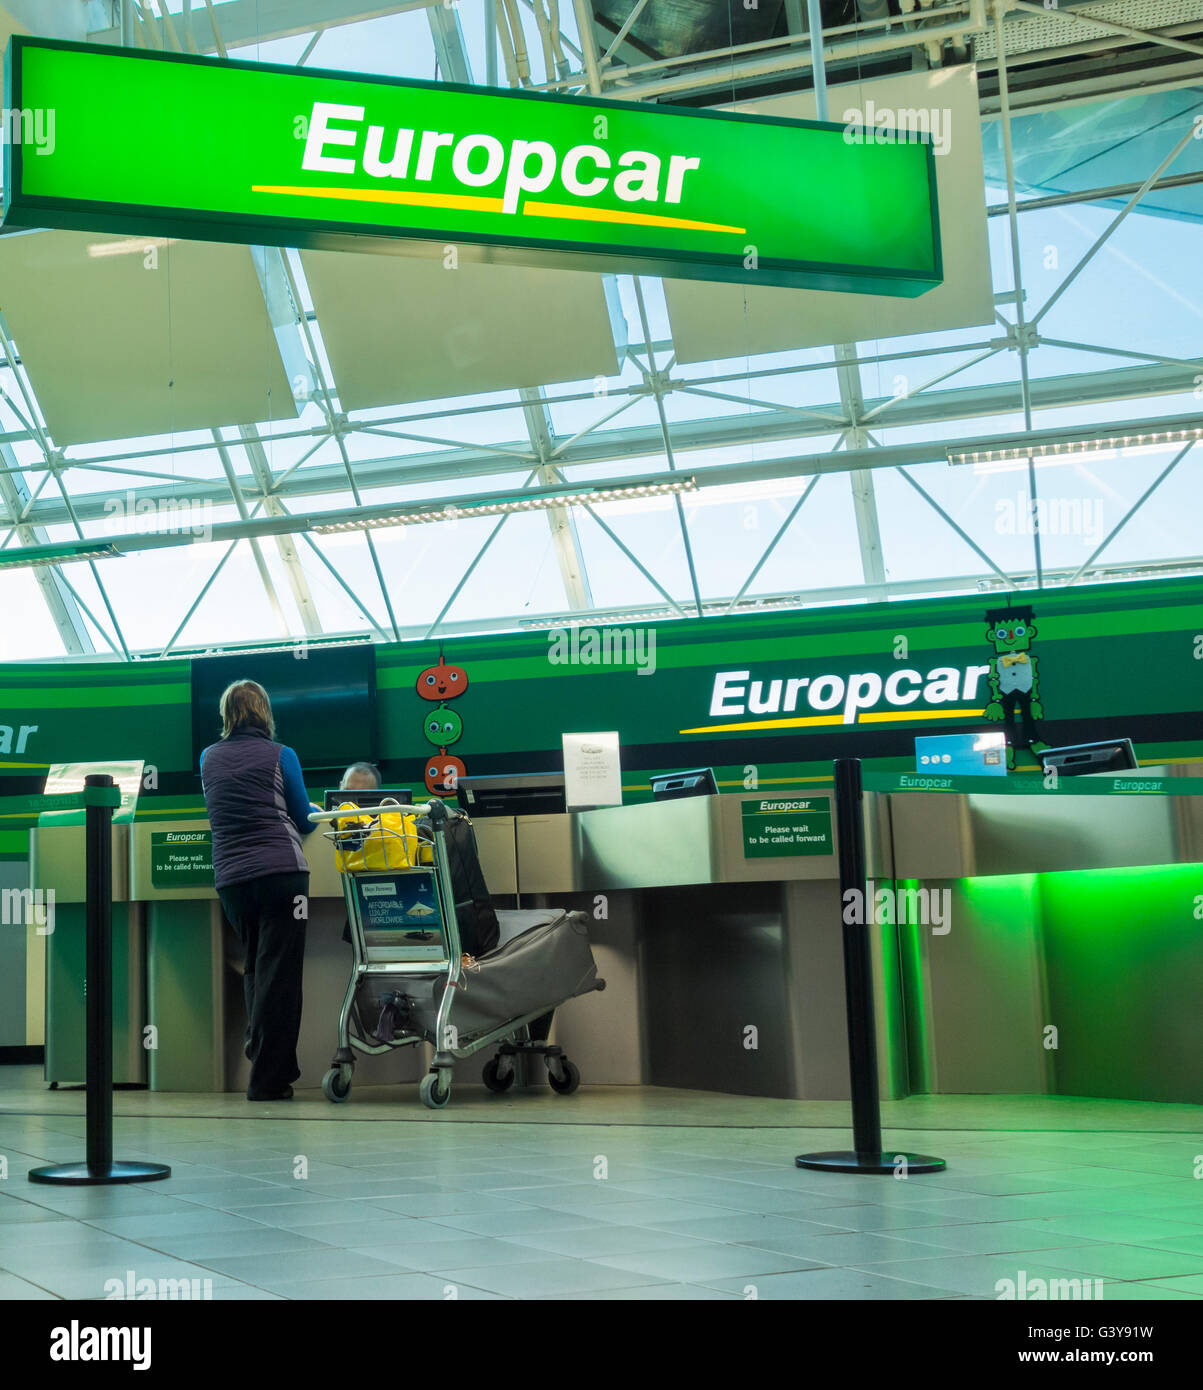 Car Hire Cape Town Airport Europcar